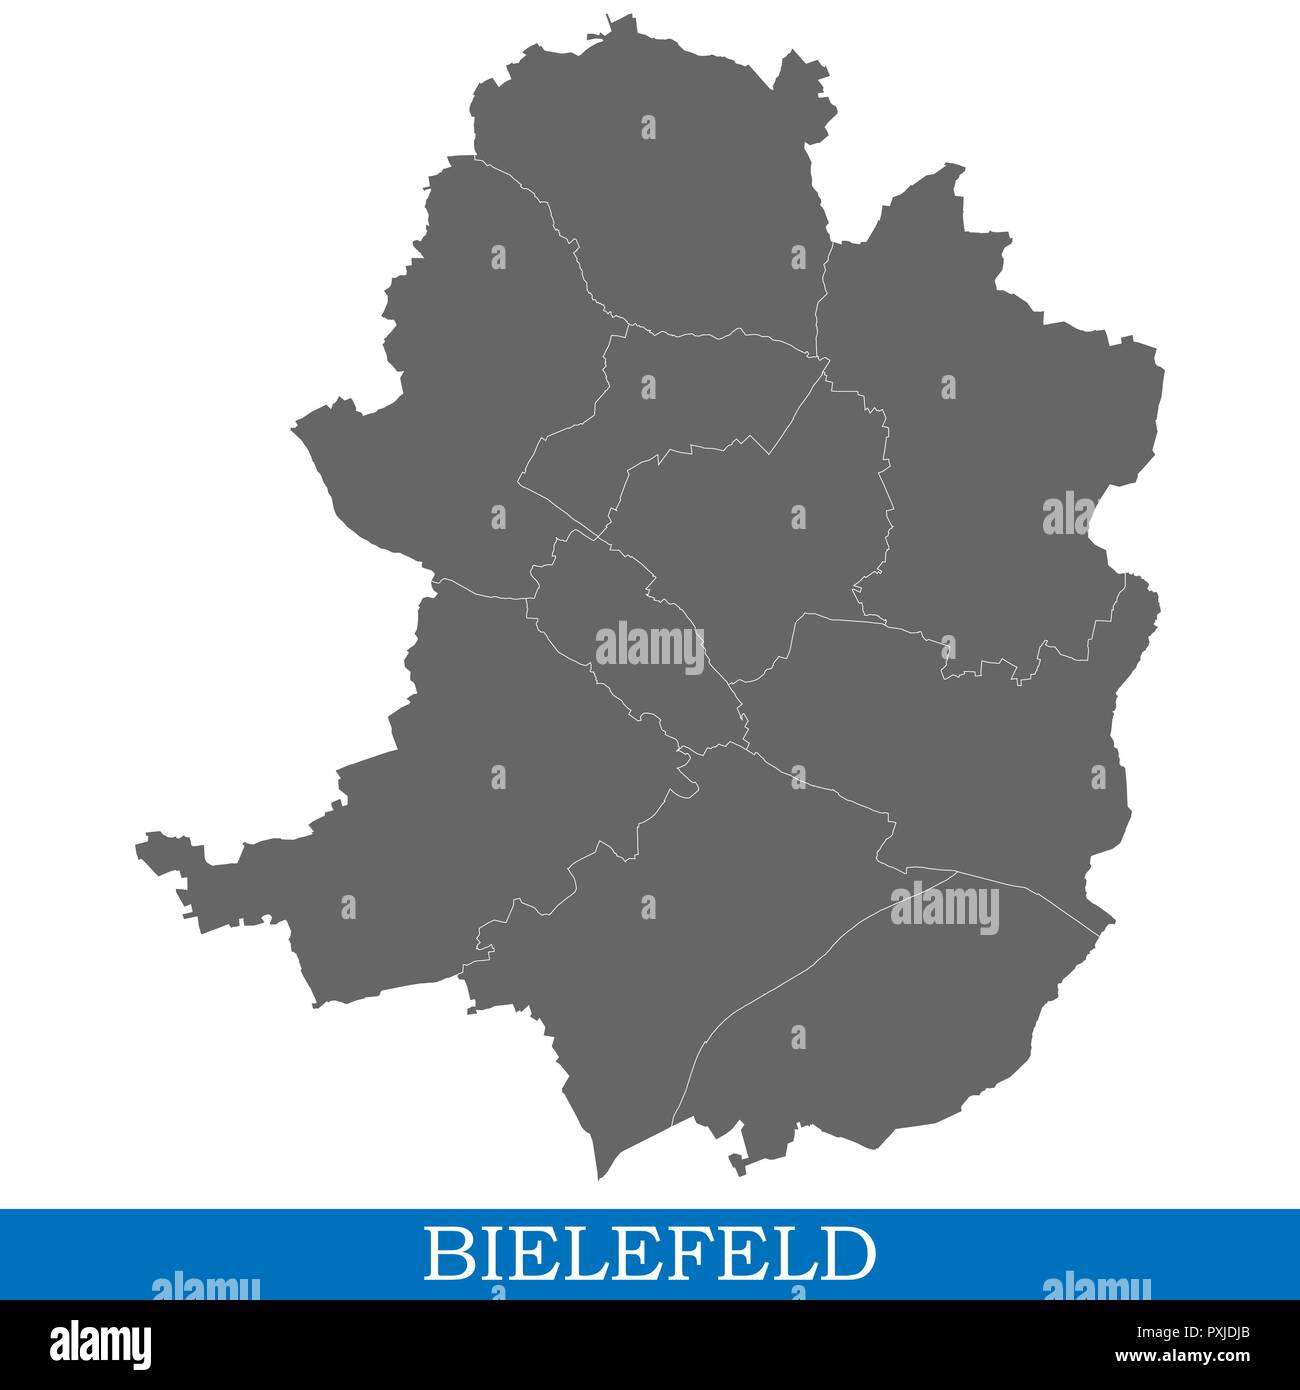 High Quality Map Of Bielefeld Is A City Of Germany With Borders